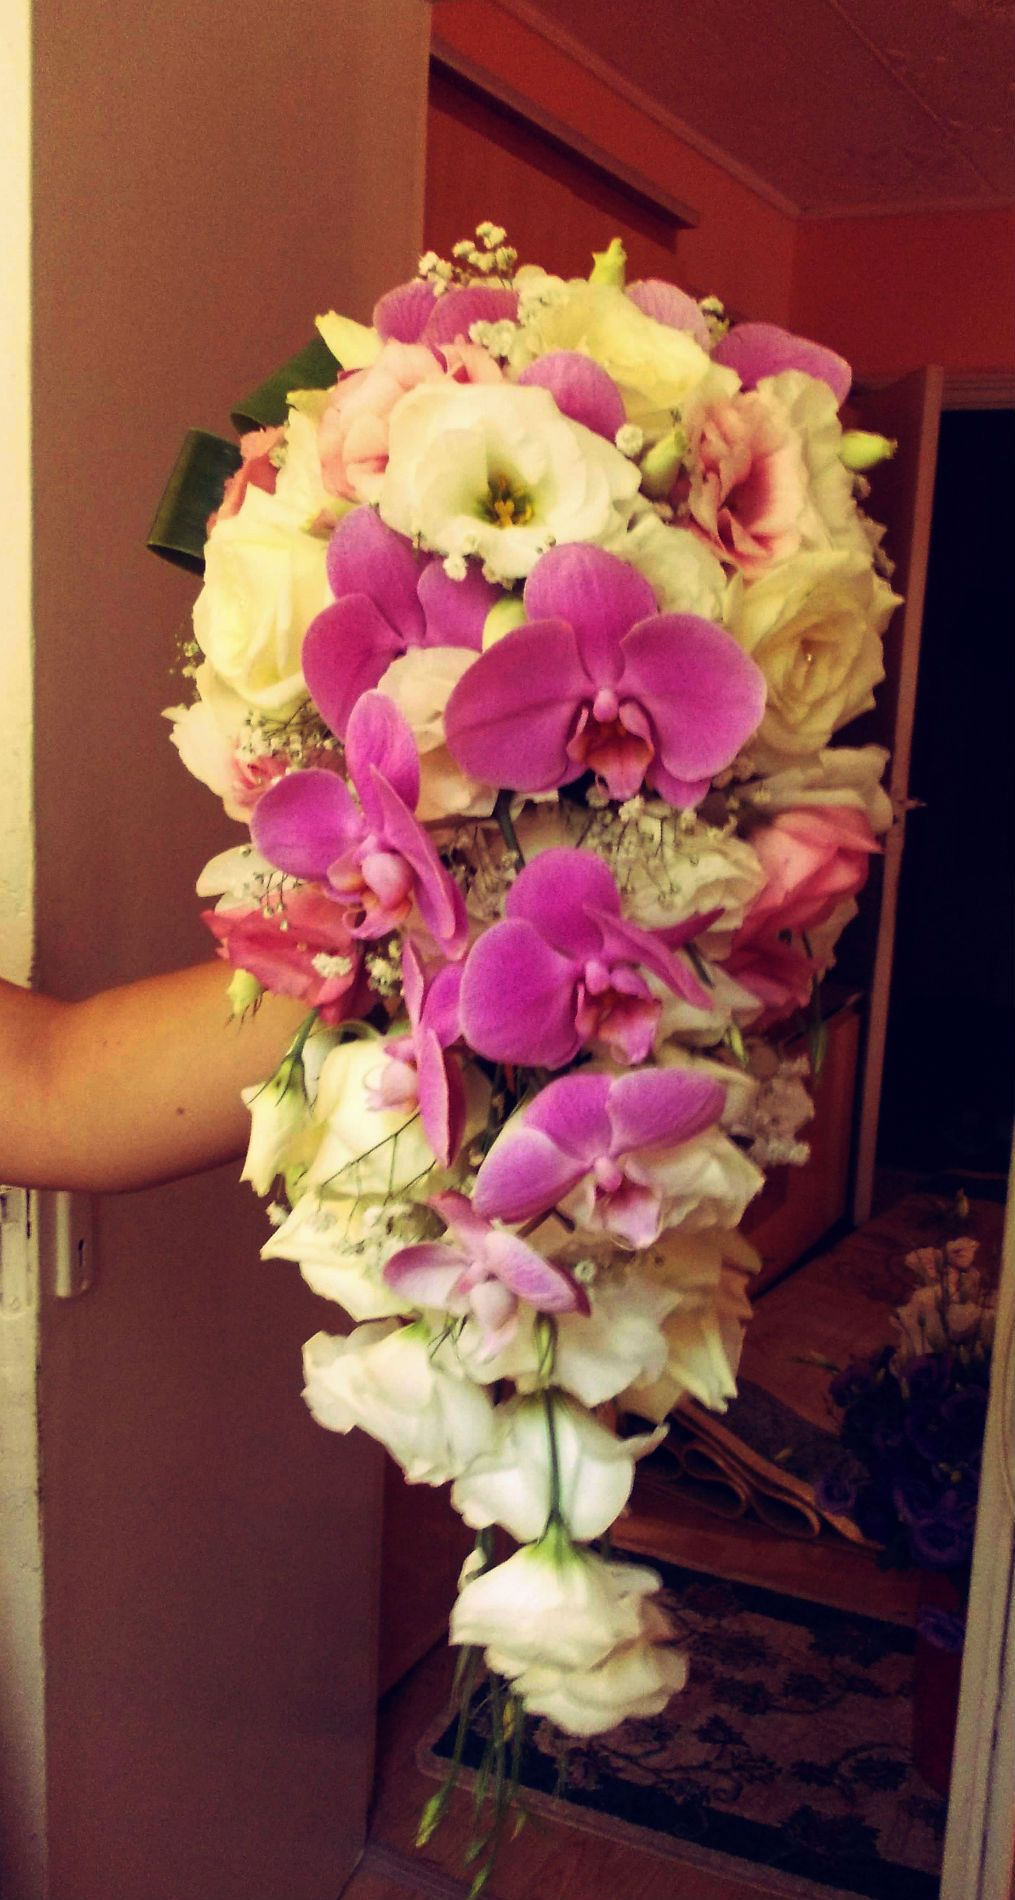 Lisianthus and orchid the best combination to make a beautiful